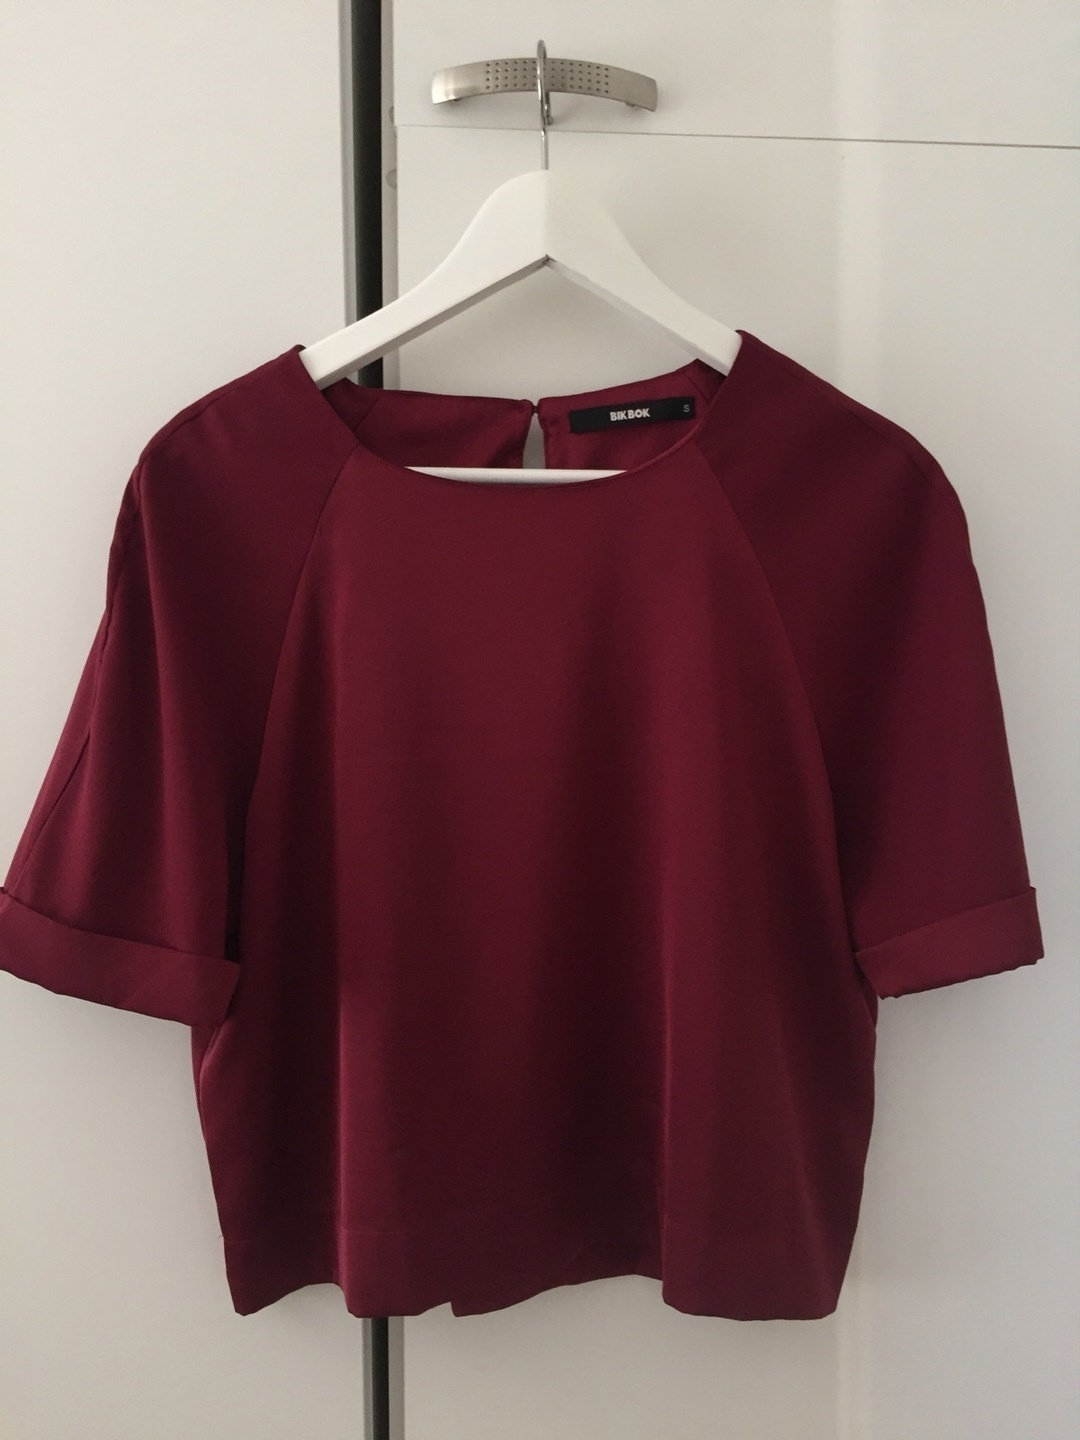 Women's blouses & shirts - BIK BOK photo 1